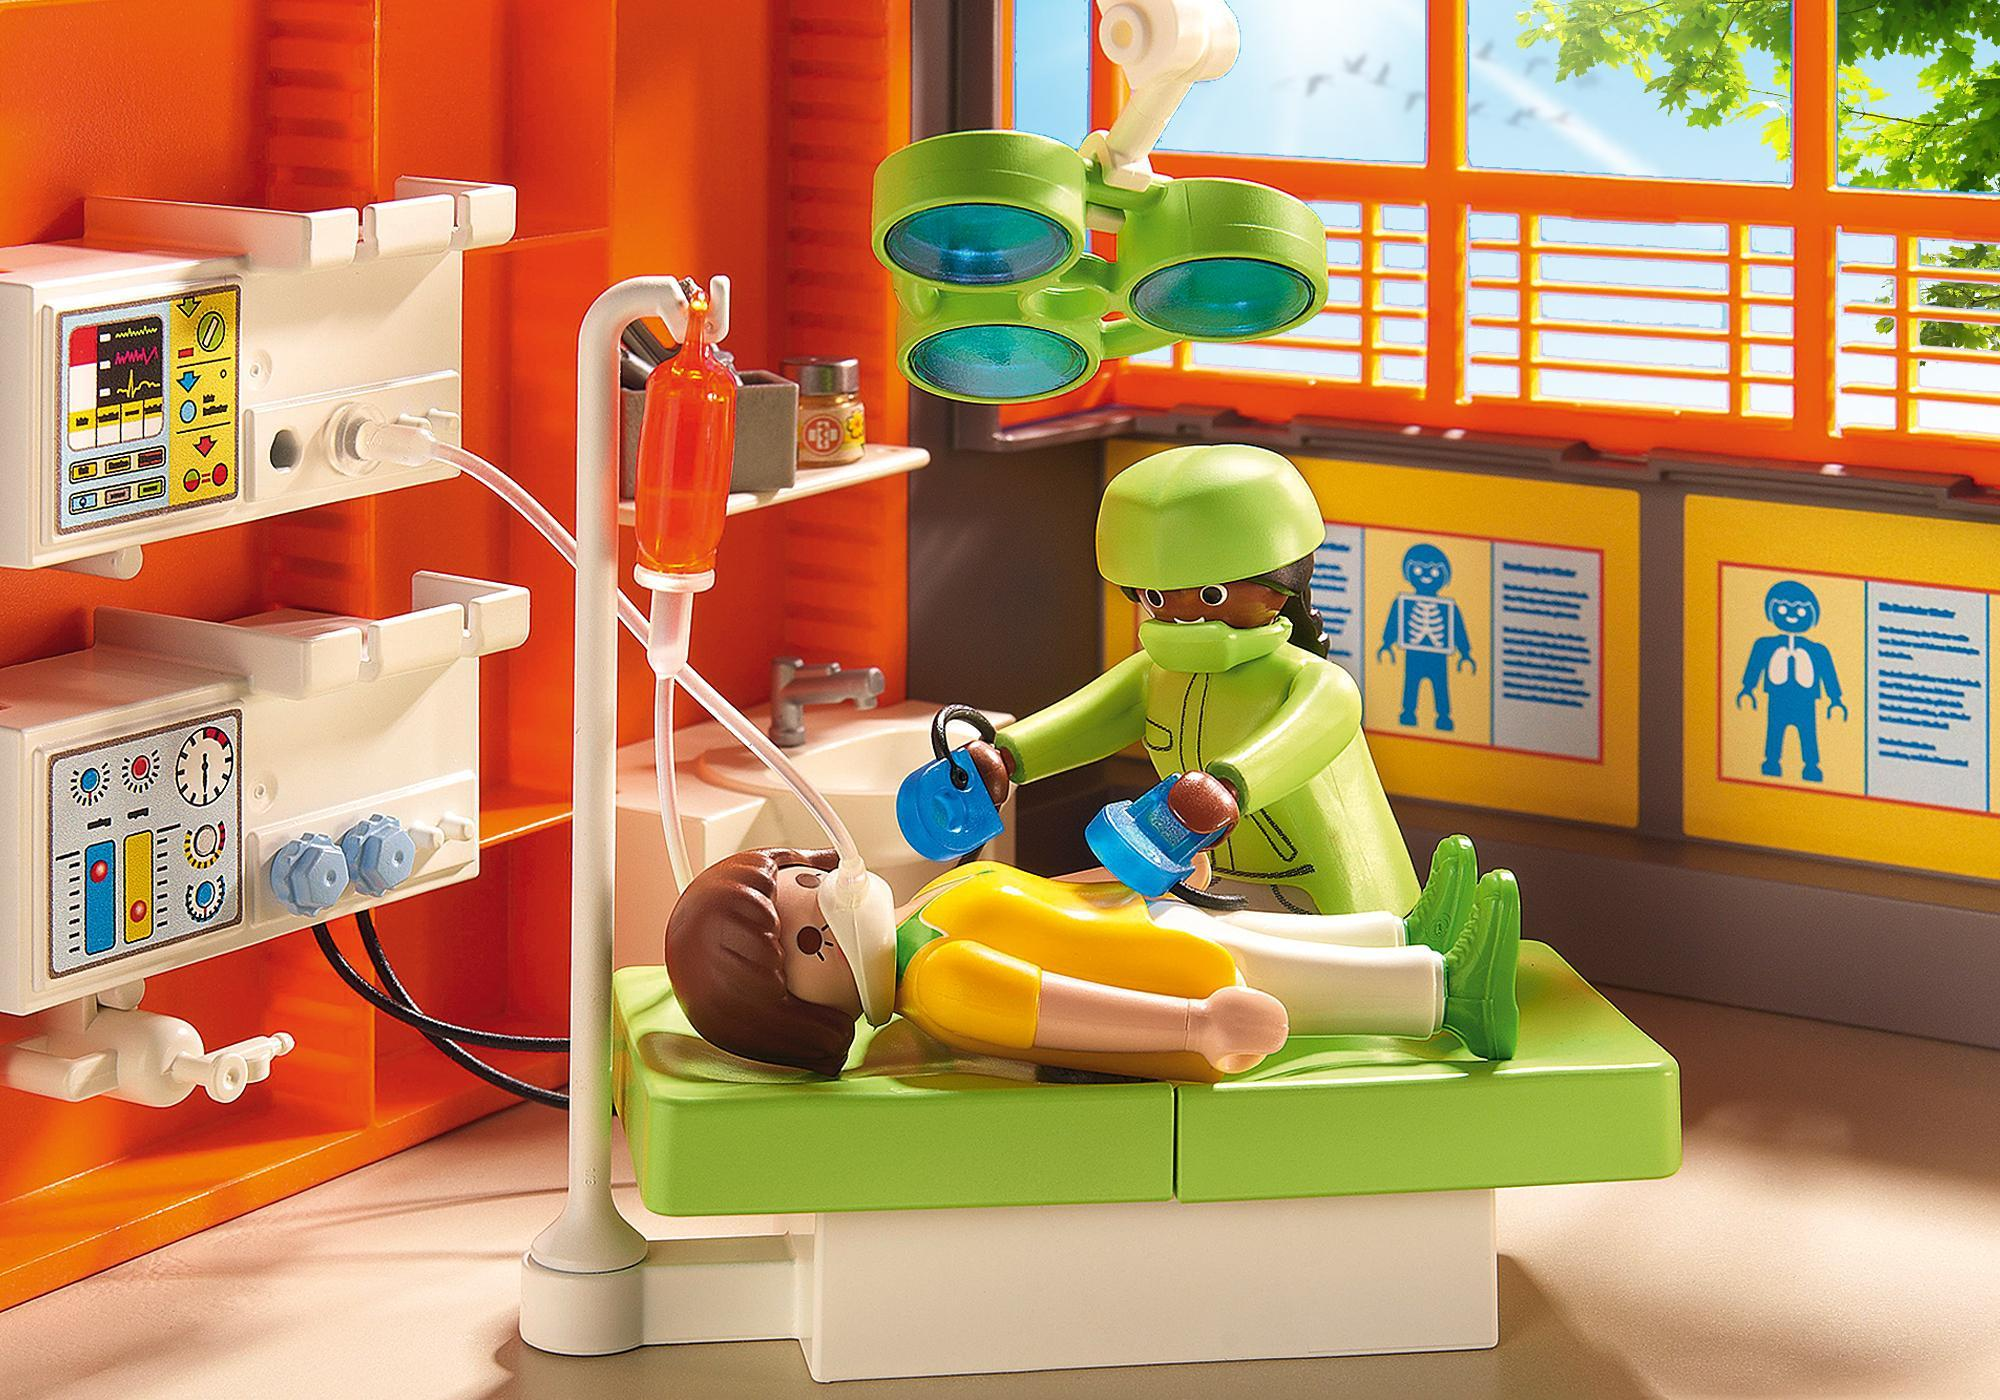 http://media.playmobil.com/i/playmobil/6657_product_extra1/Hospital Infantil